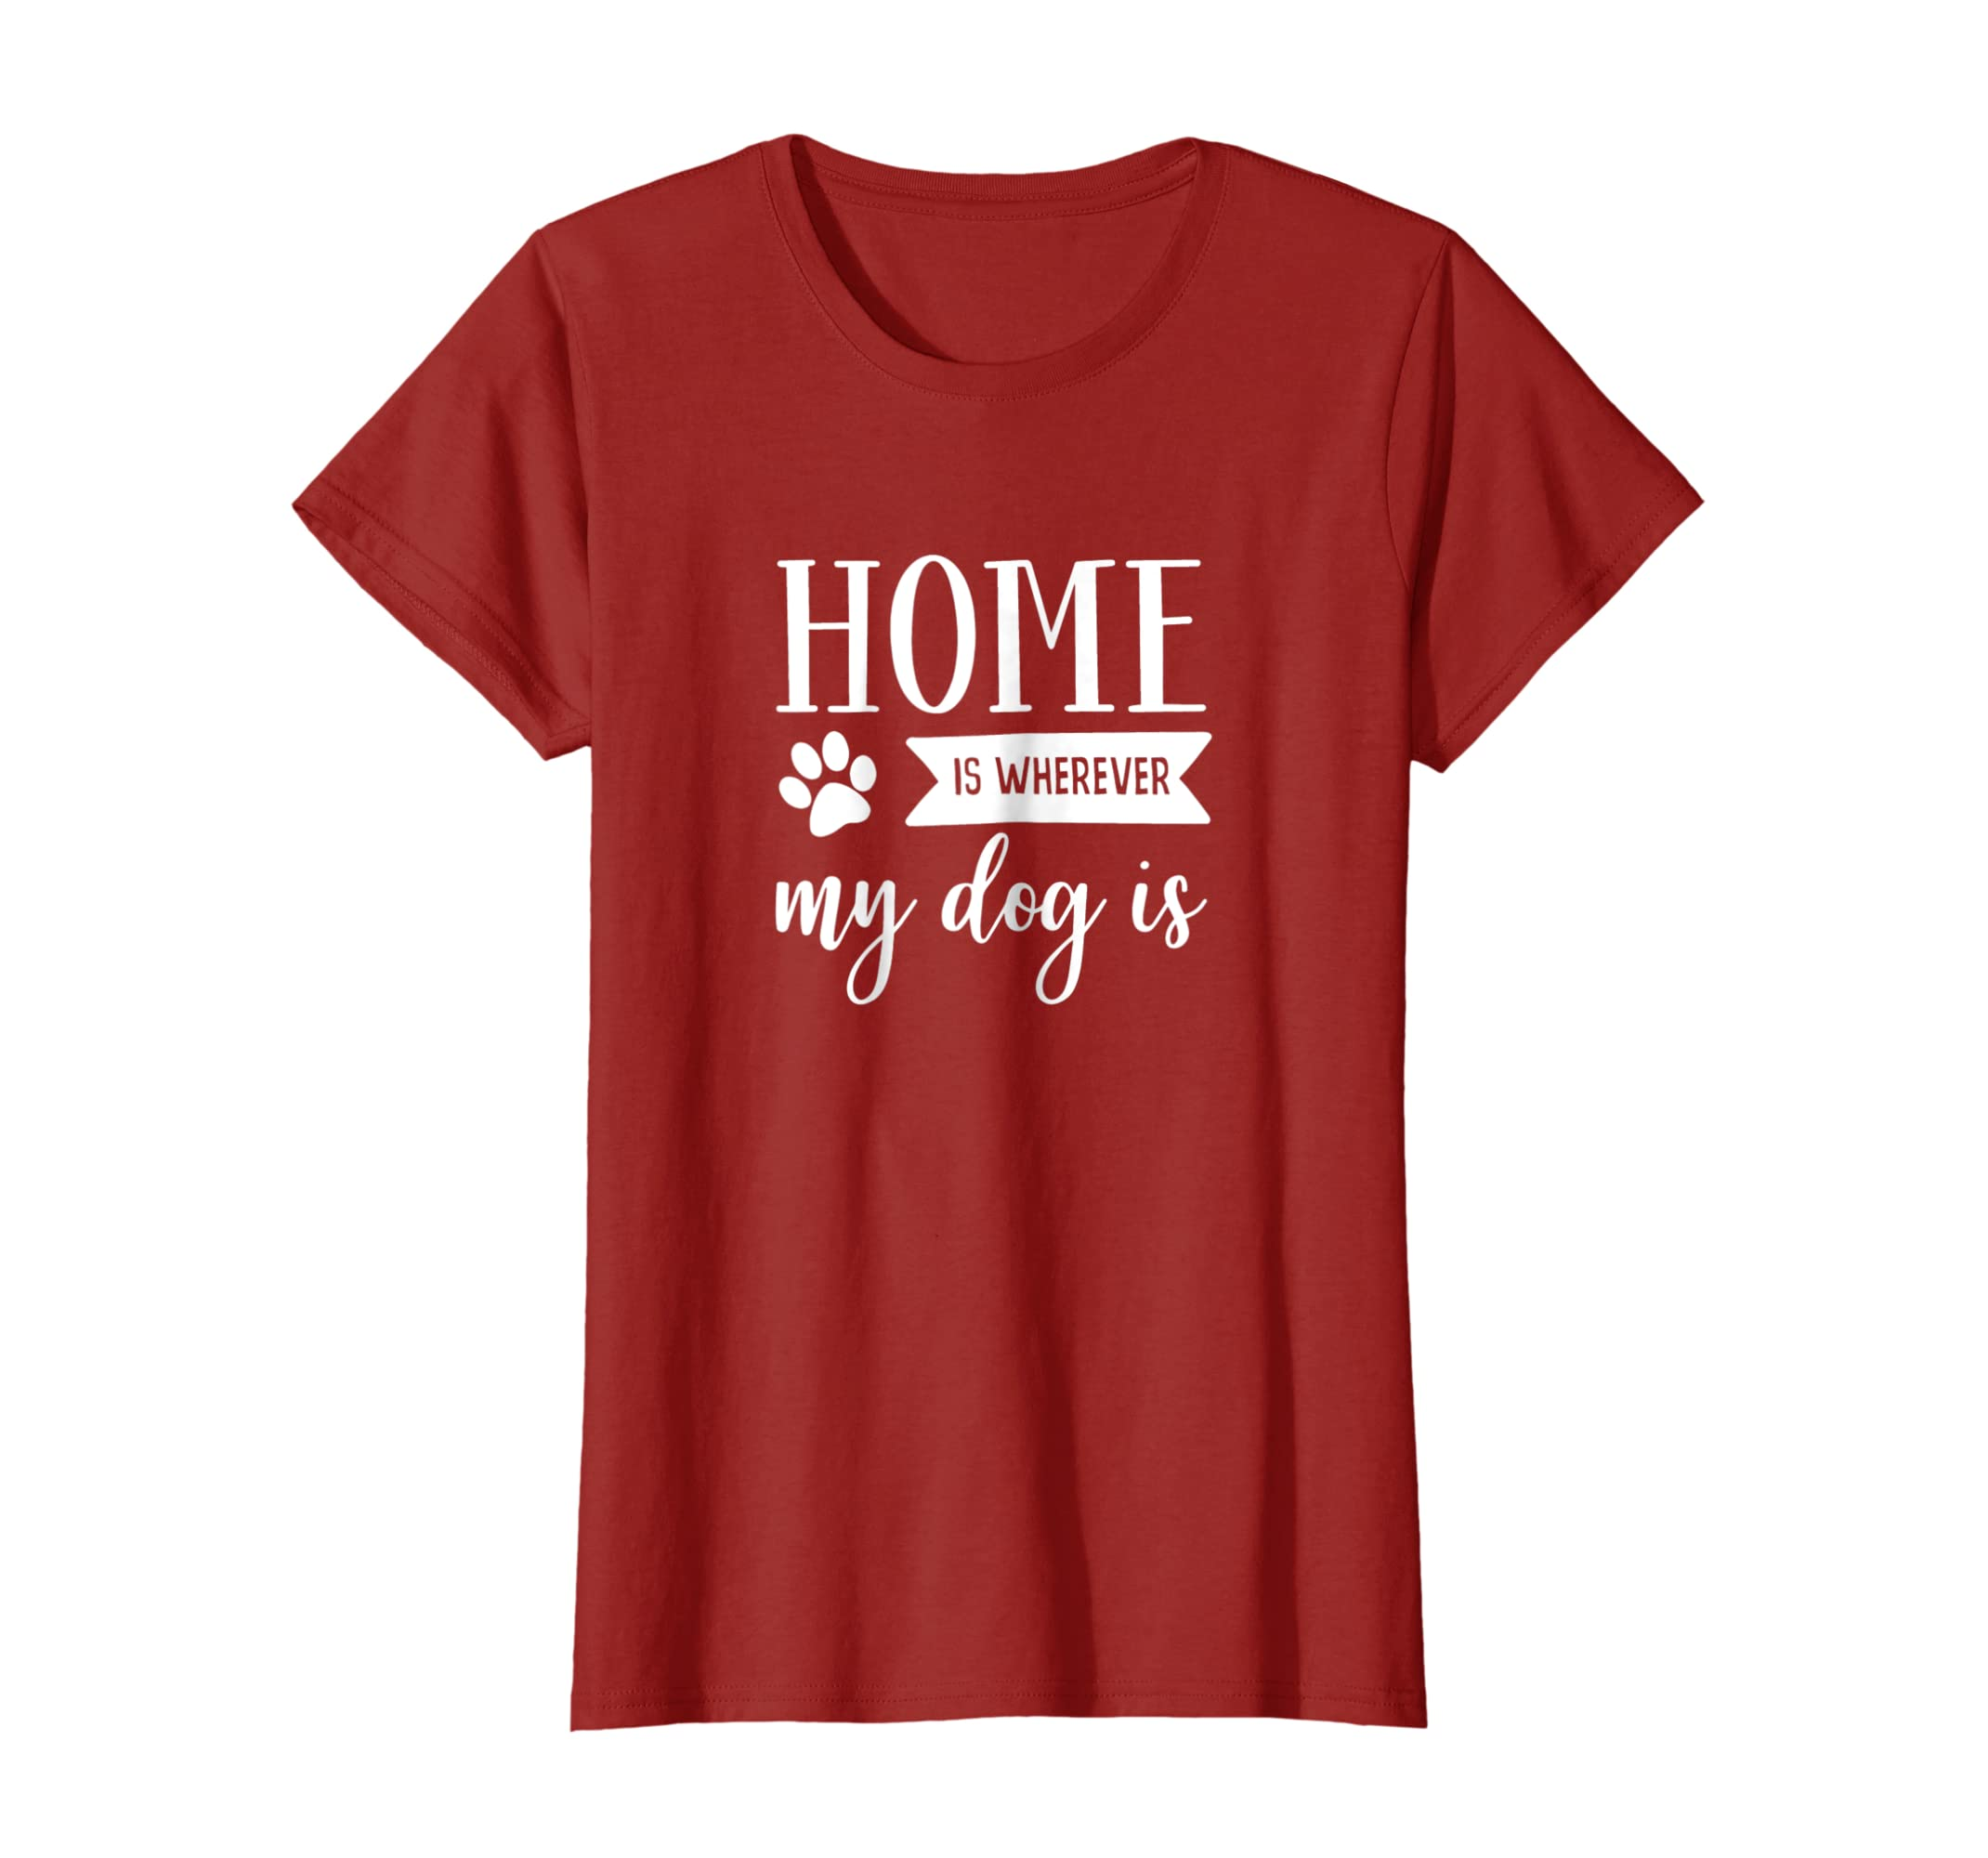 Home Is Wherever My Dog Is Shirt For Dog Lovers-AZP